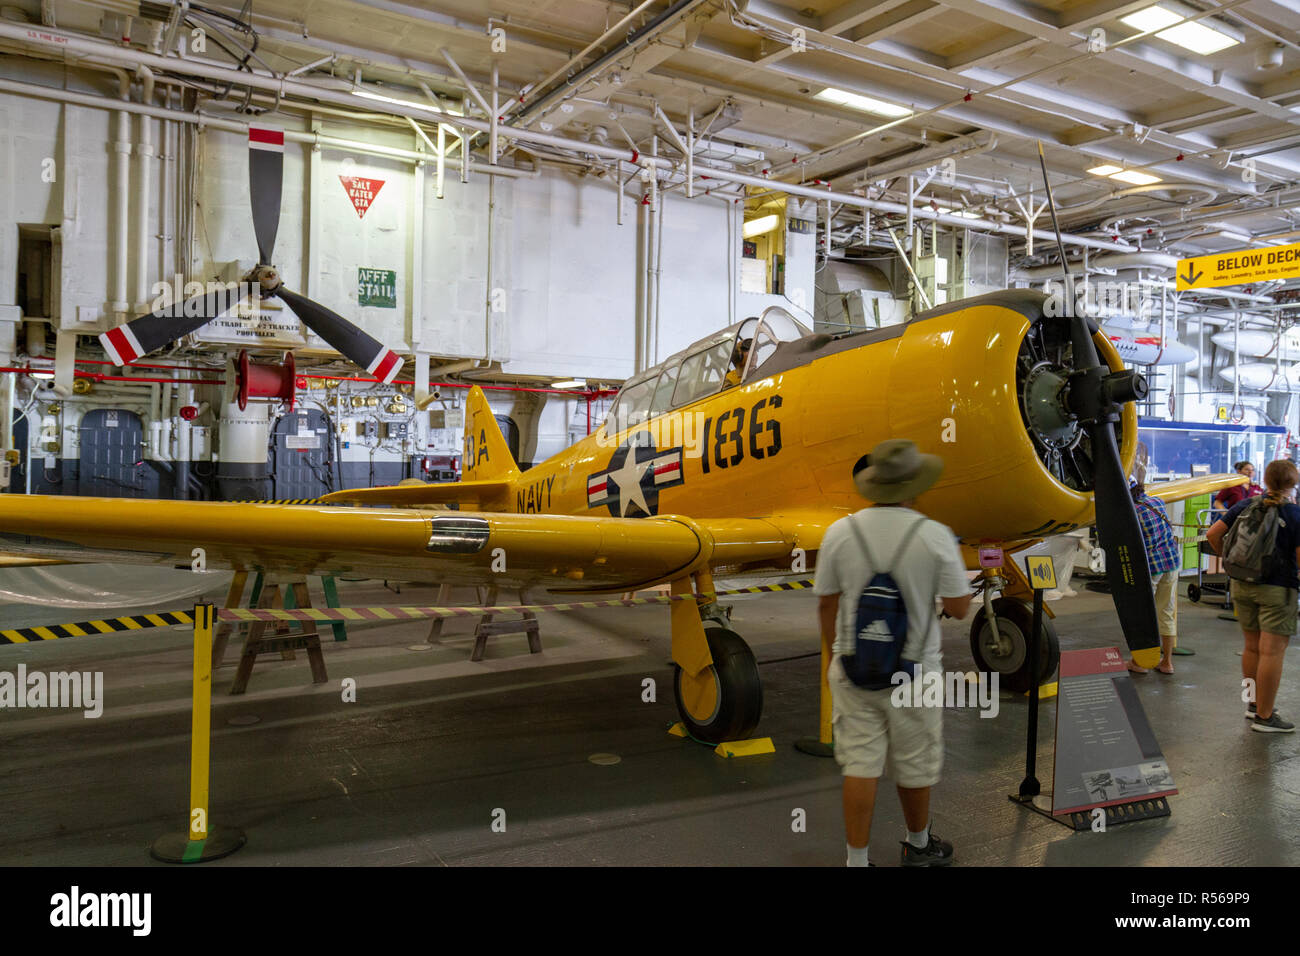 A SNJ pilot trainer aircraft by North American Aviation below decks on the USS Midway, San Diego, California, United States. - Stock Image